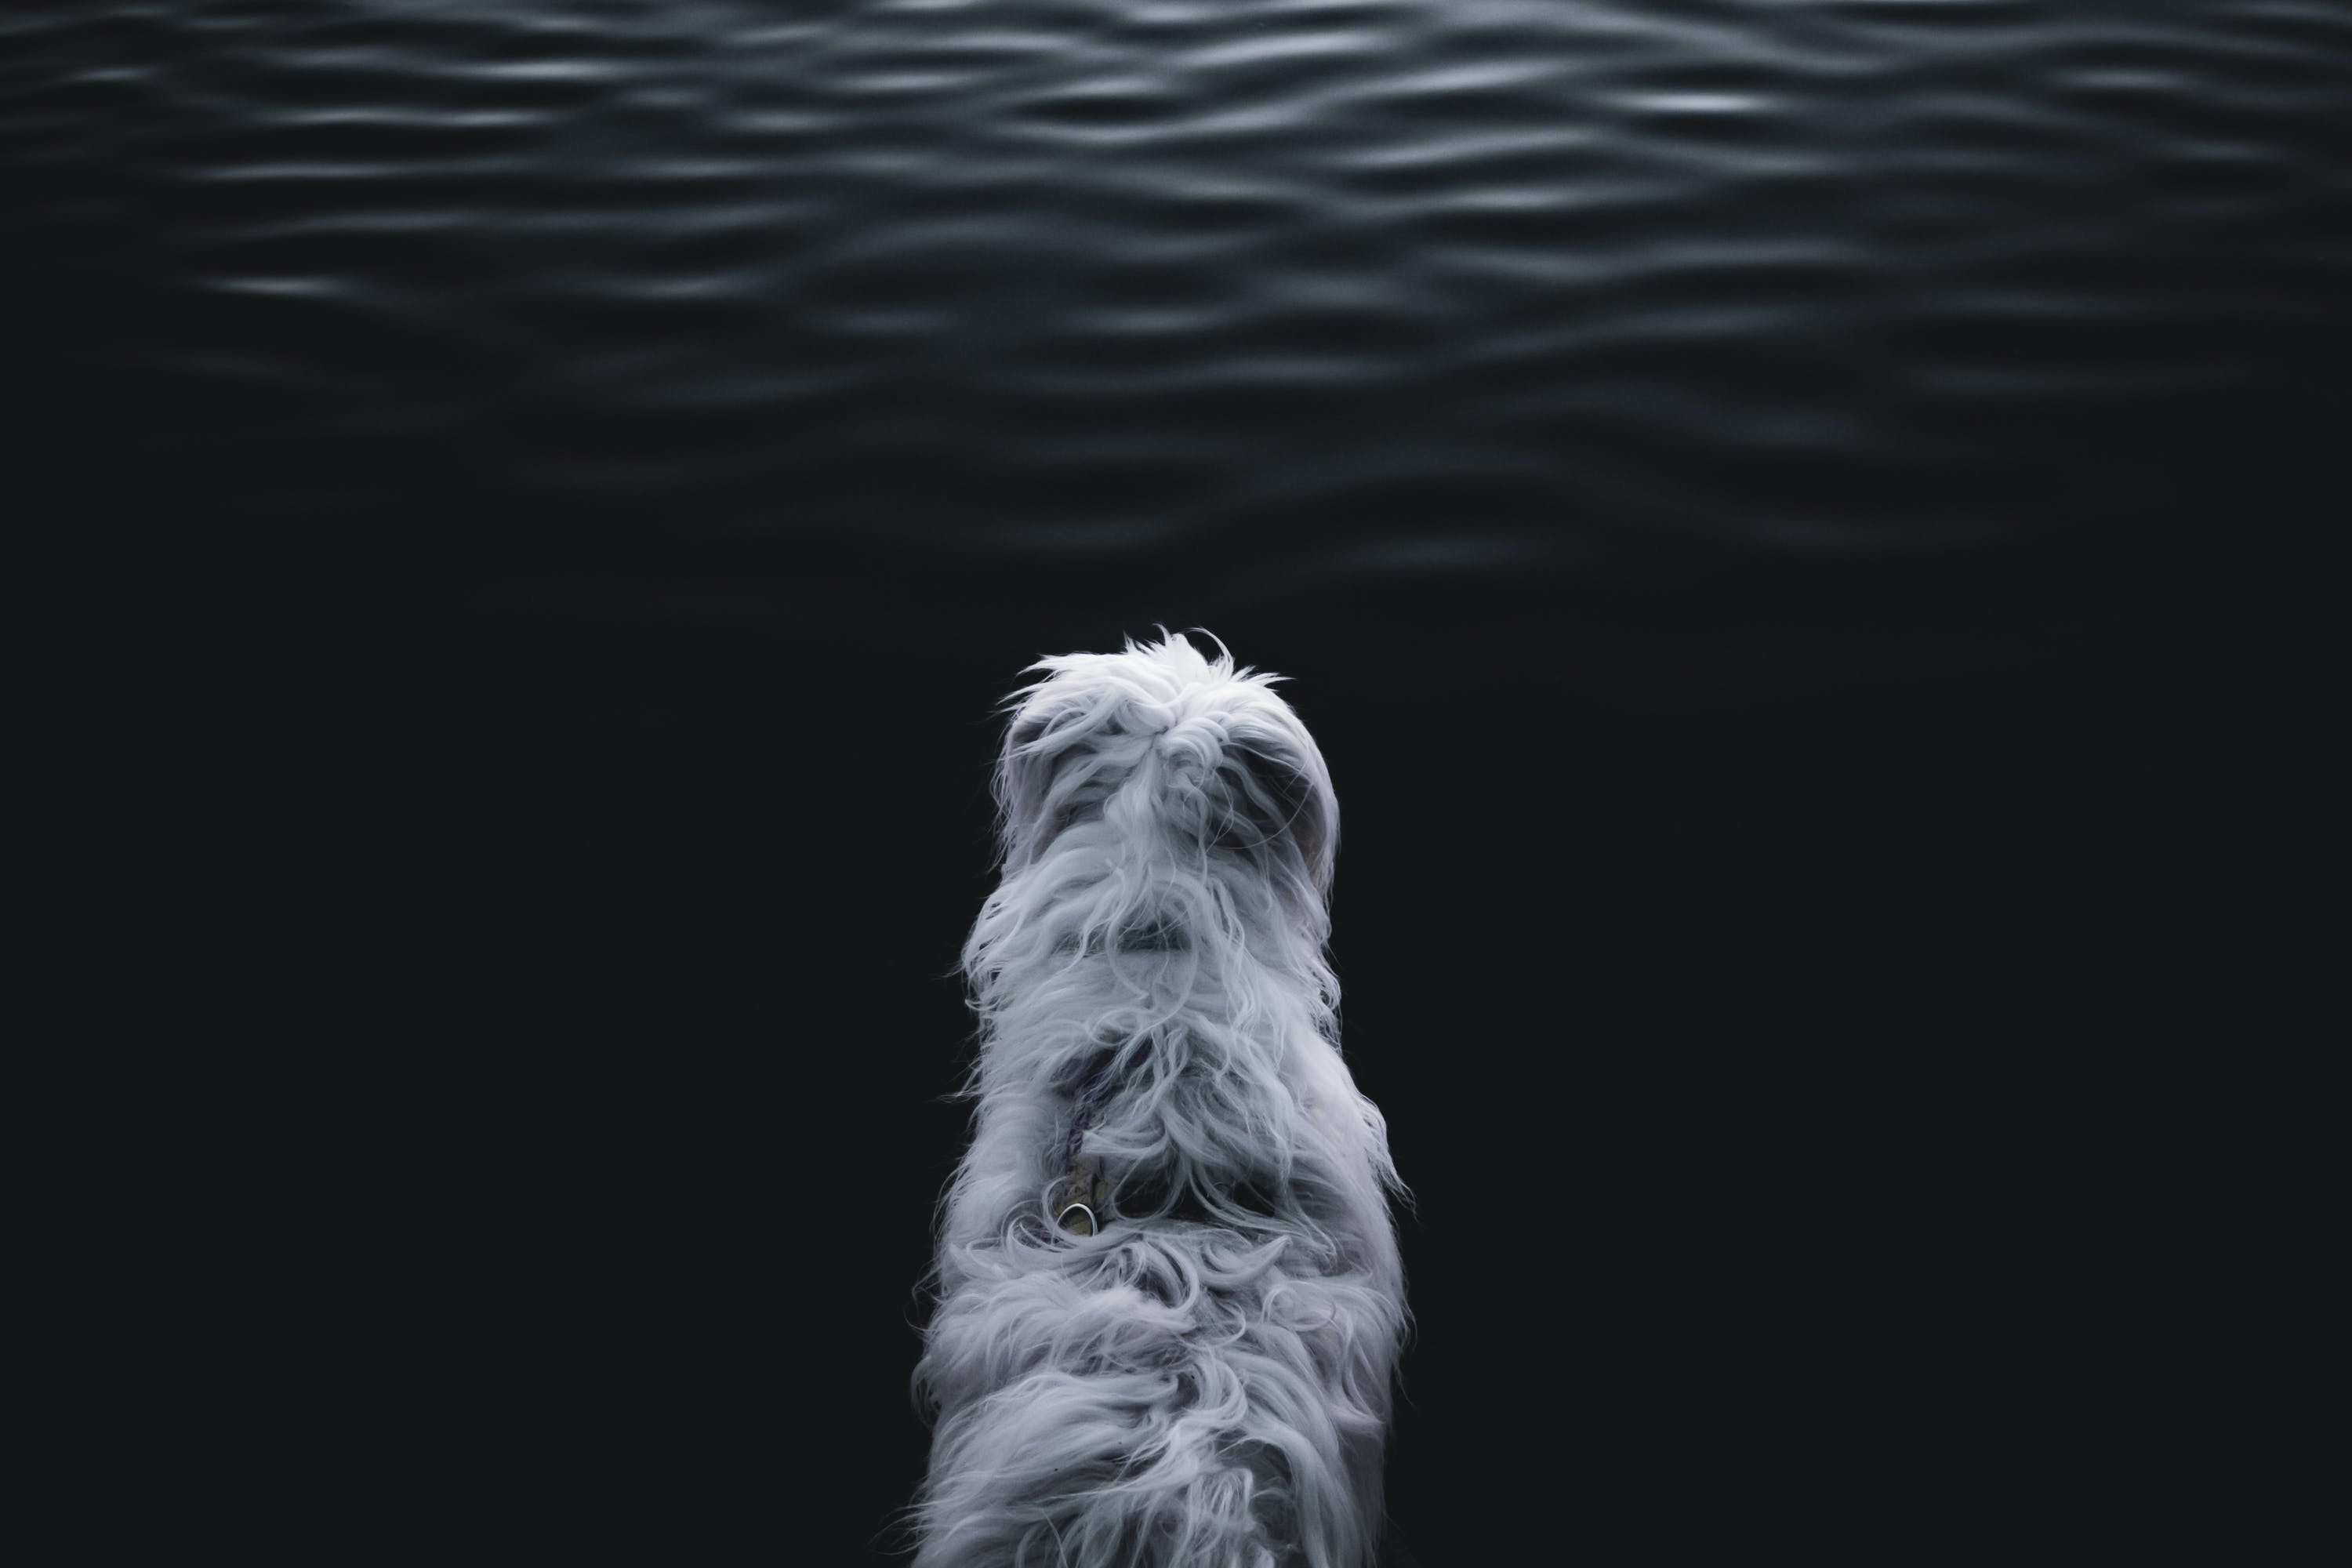 White Animal Near Body of Water